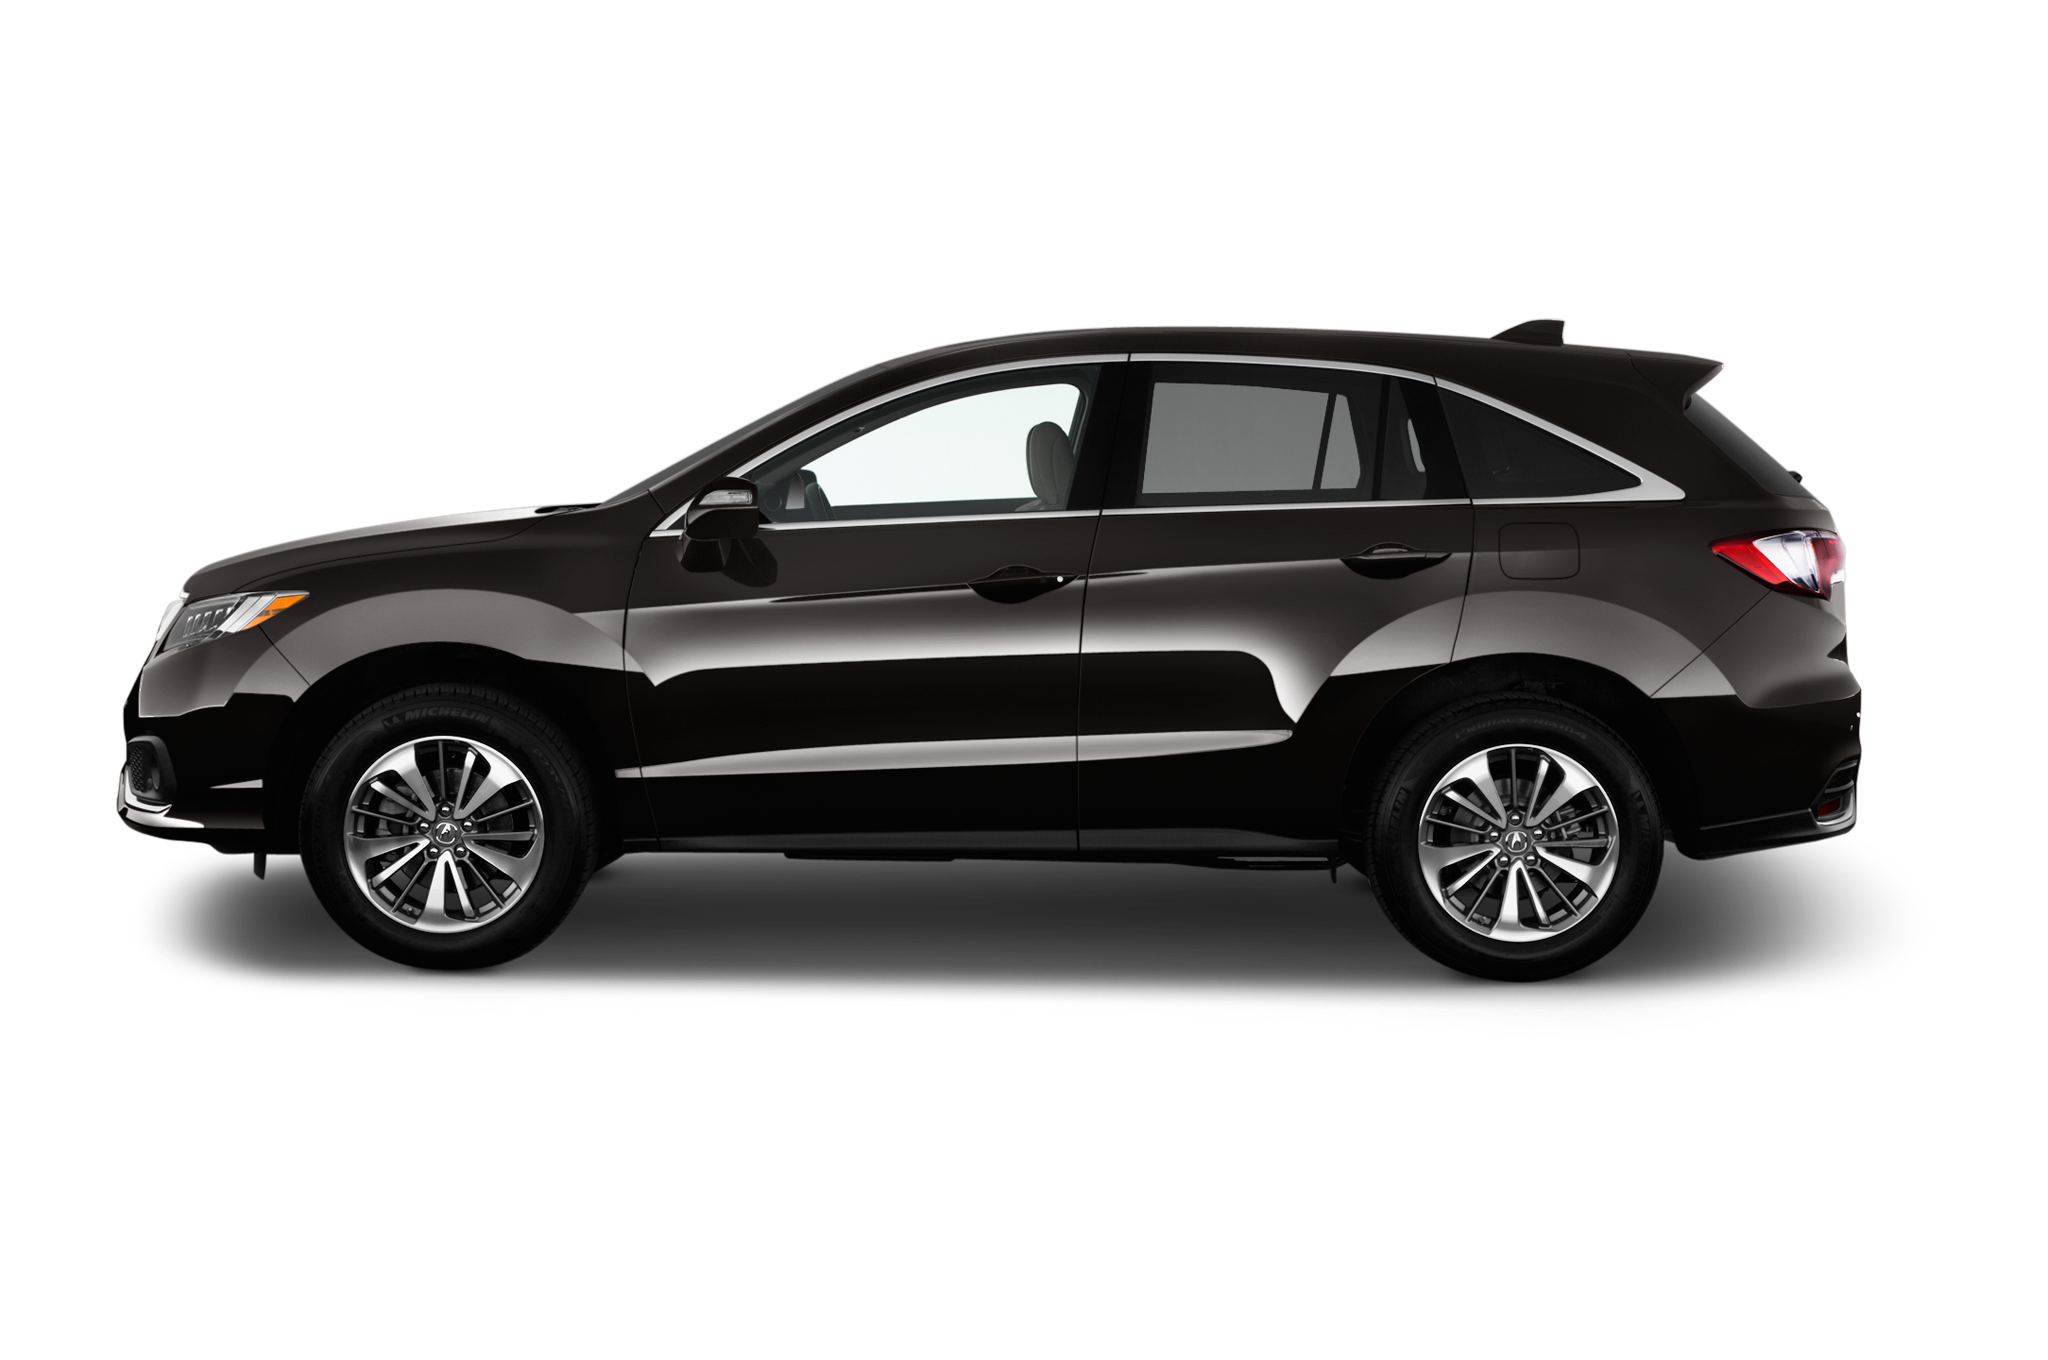 Refreshed 2016 Acura RDX Price Rises, New Advance Package ...